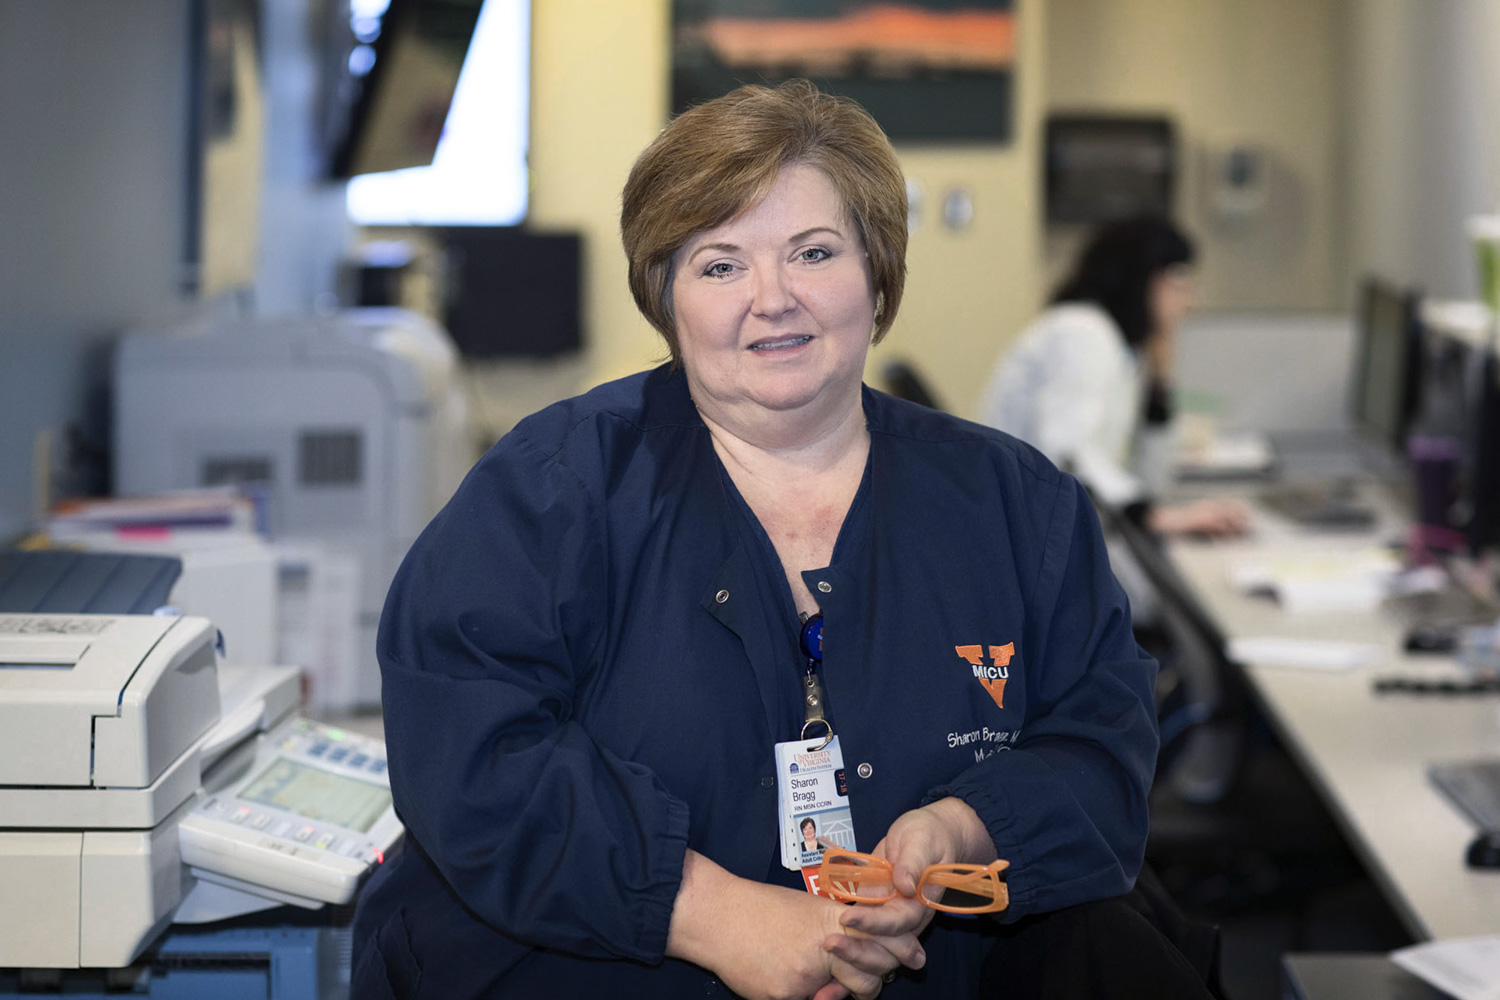 A dedicated lifelong learner, Sharon Bragg has twice earned UVA degrees in December. (Photo by Dan Addison, University Communications)